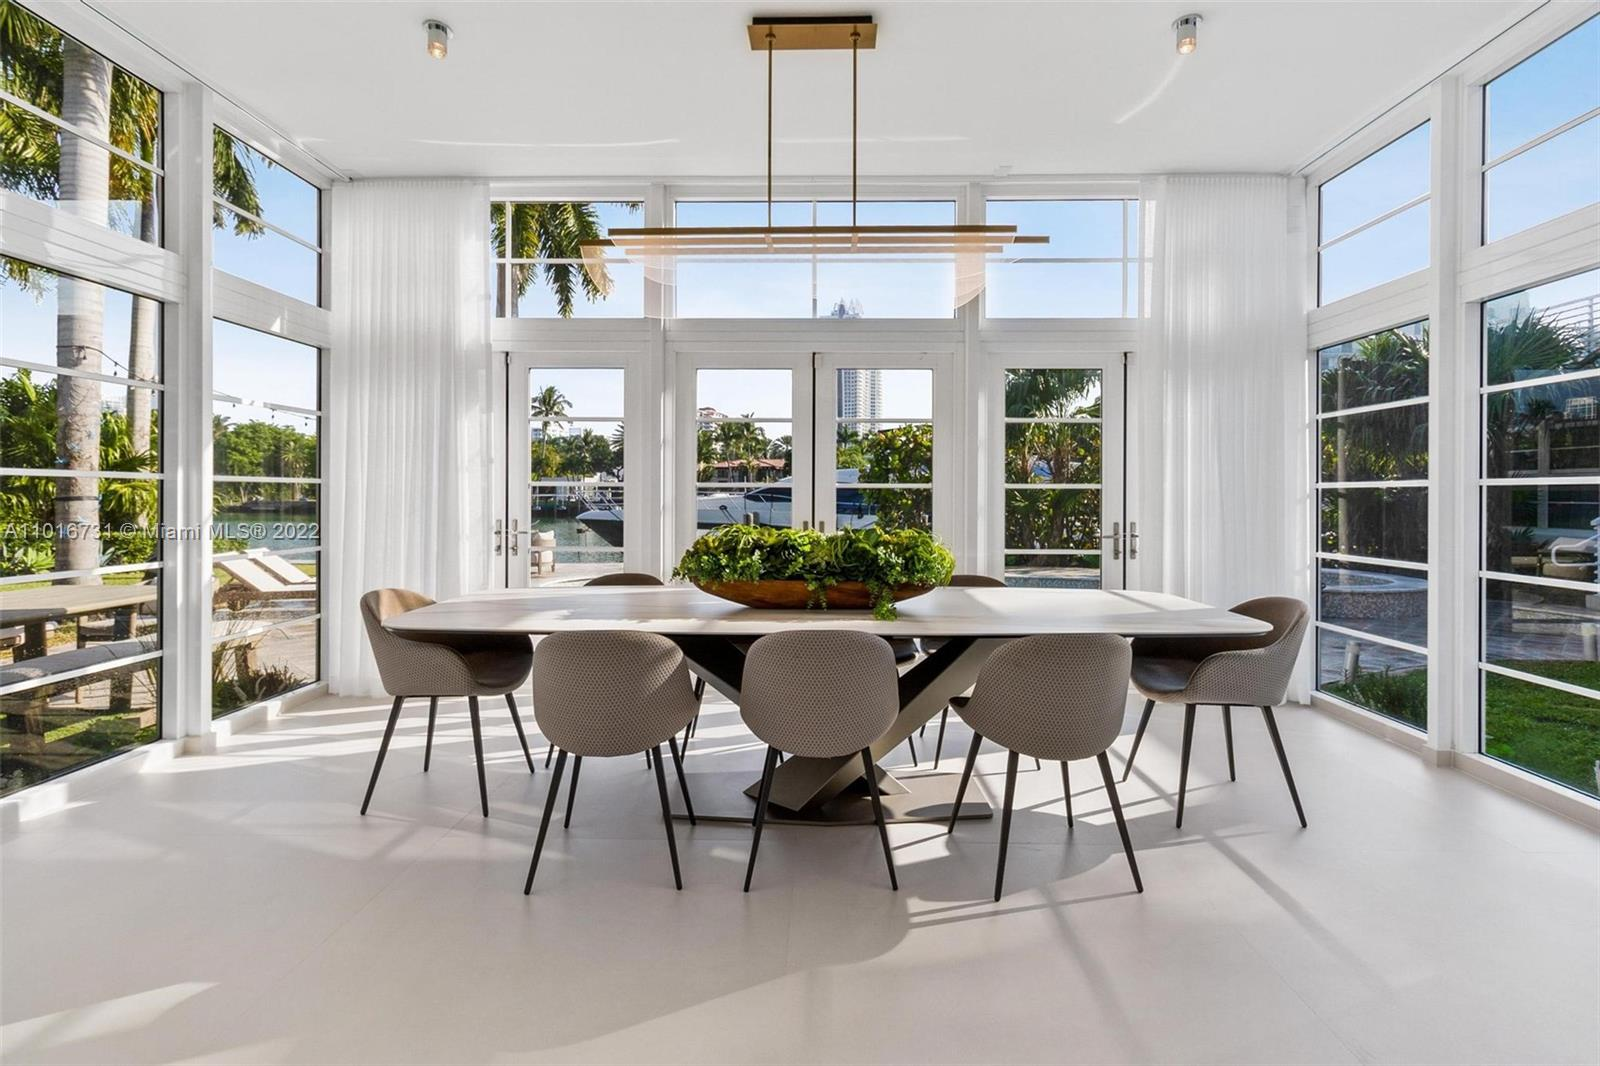 Beach View - 6301 Pine Tree Dr., Miami Beach, FL 33141